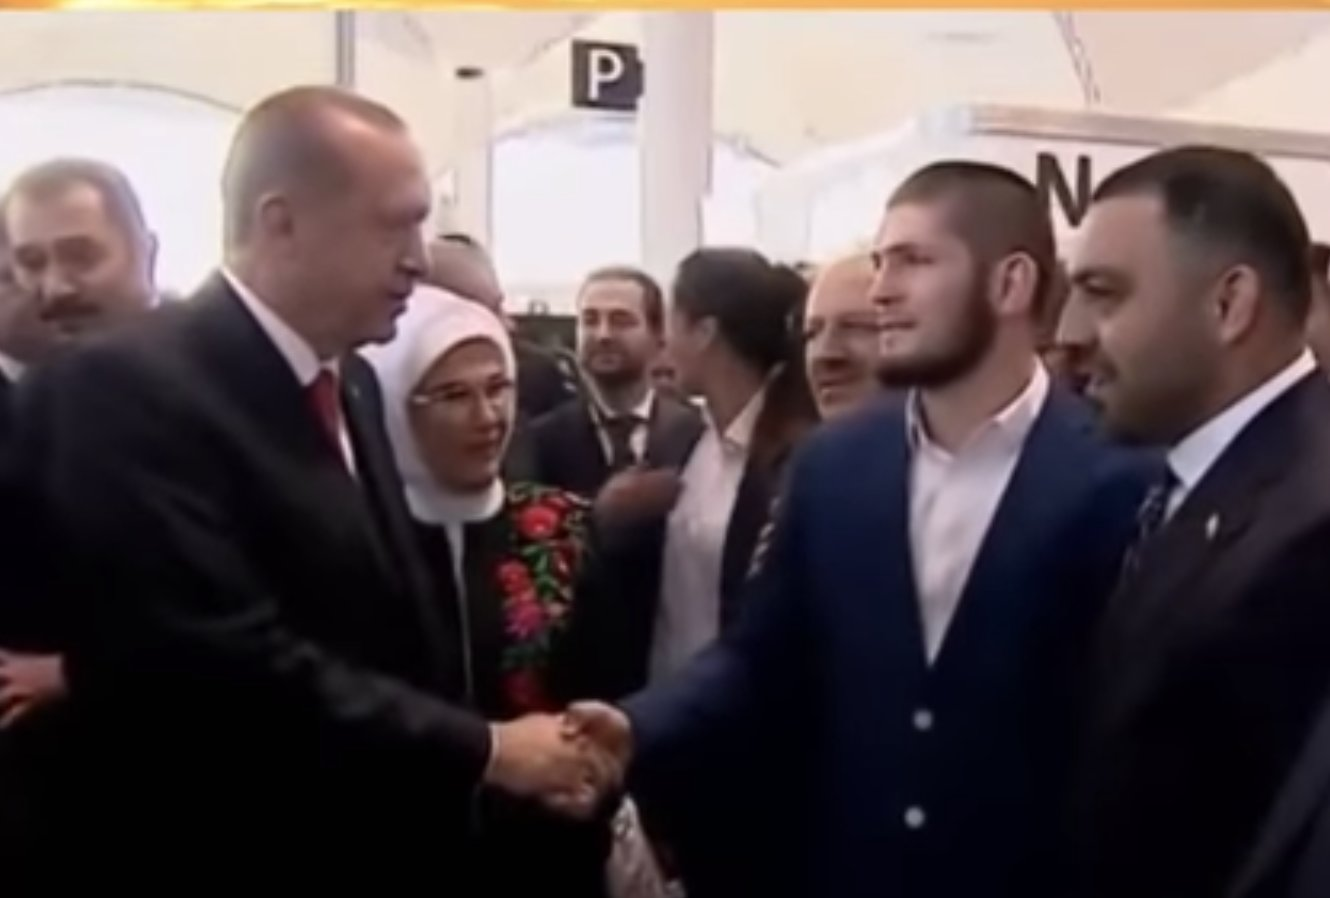 Khabib Nurmagomedov shows his true self. Meets with CRIMINAL Turkish president Erdogan!